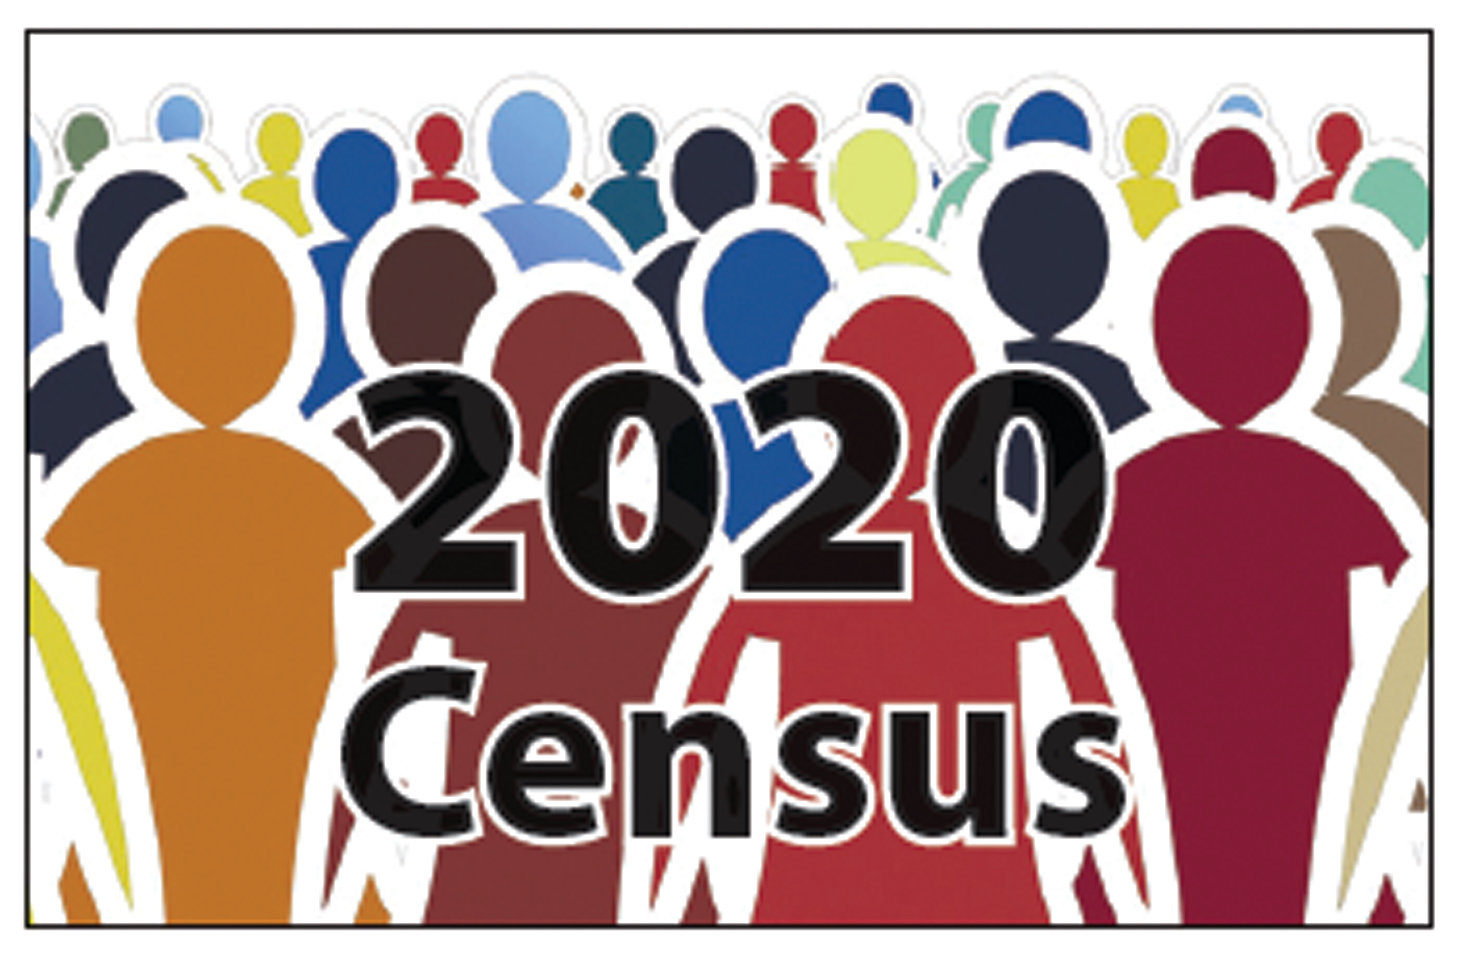 census 2020 - photo #21